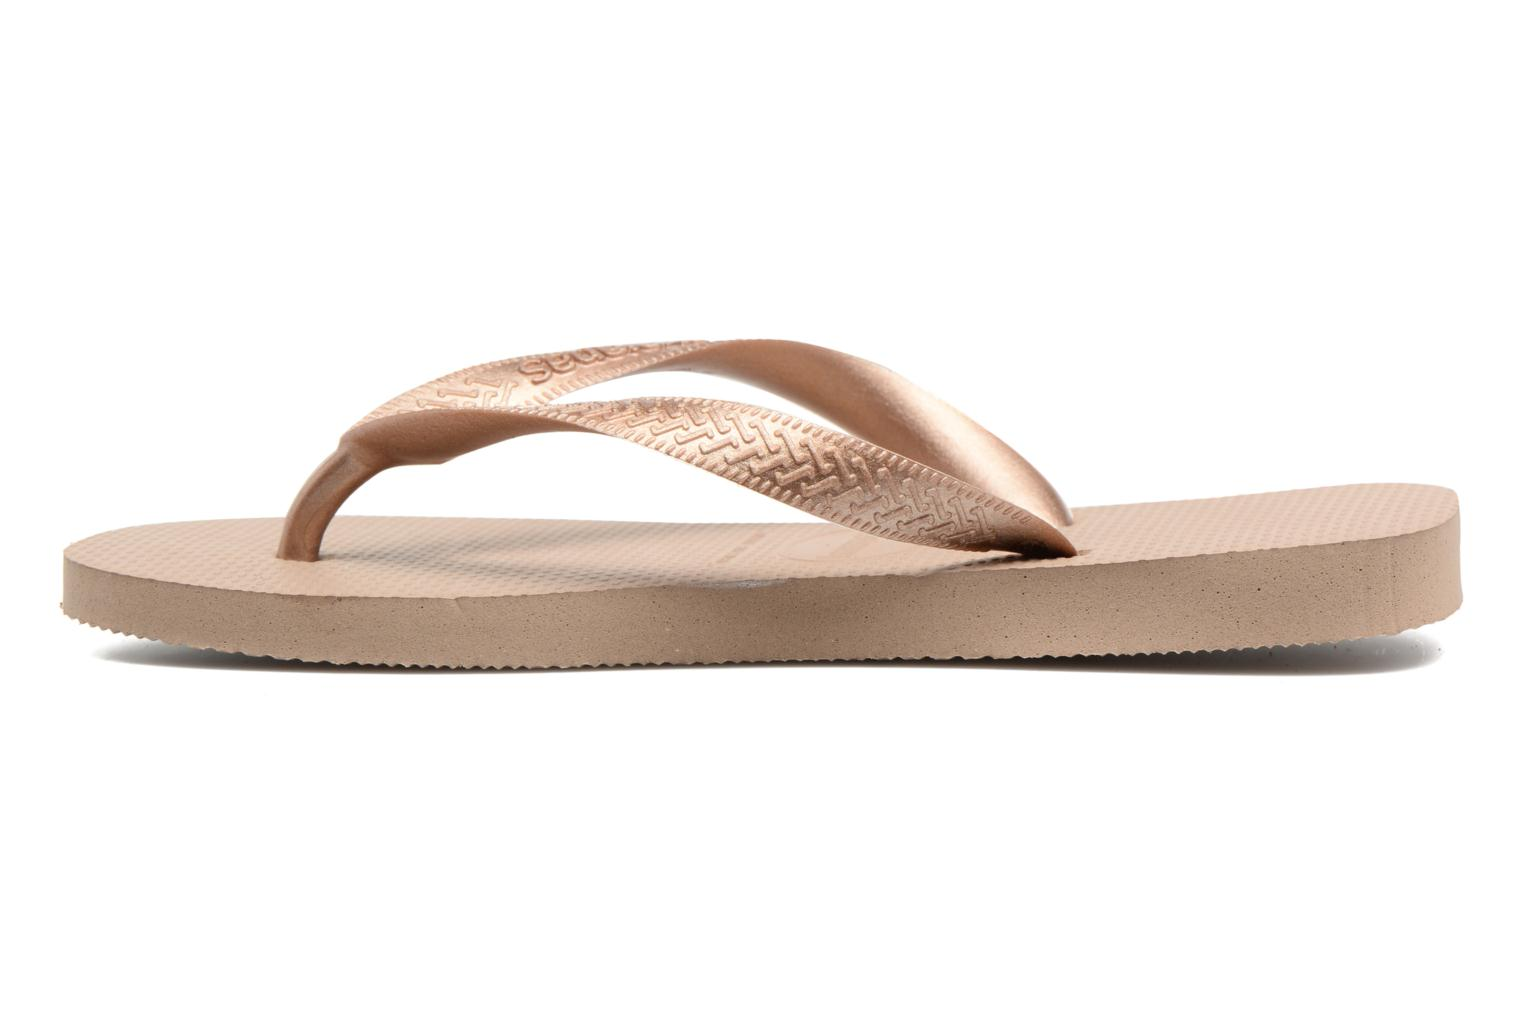 Chanclas Havaianas Top Tiras Marrón vista de frente